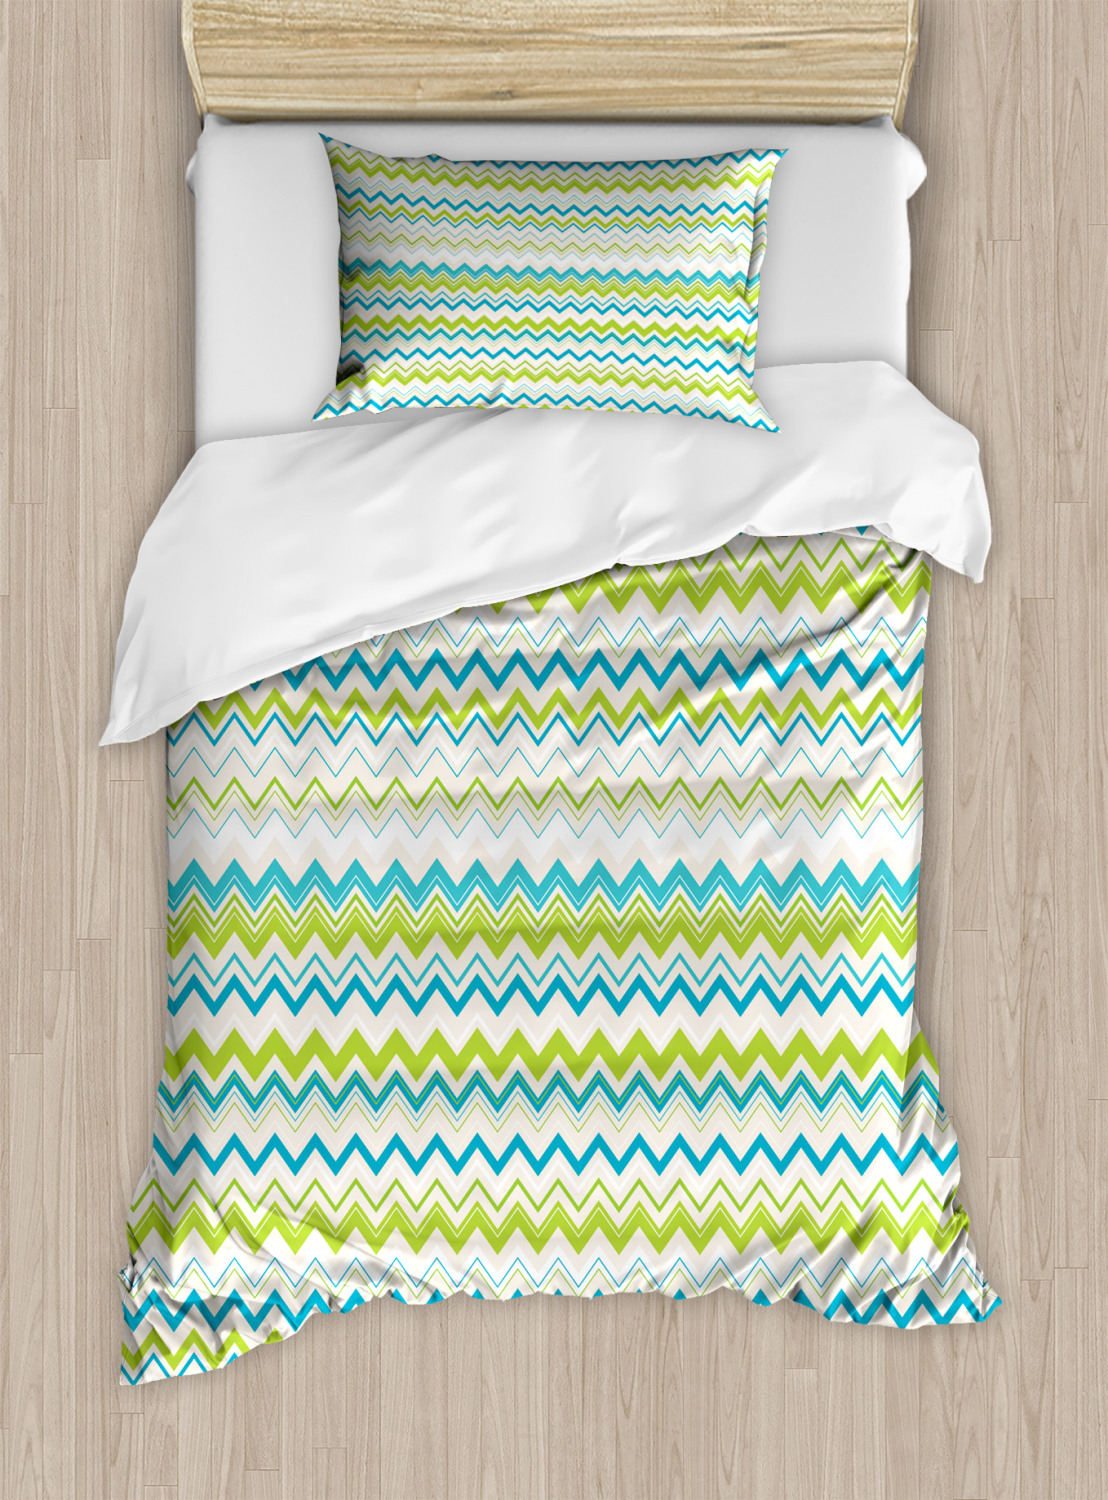 Teal-and-White-Duvet-Cover-Set-Twin-Queen-King-Sizes-with-Pillow-Shams-Ambesonne thumbnail 50